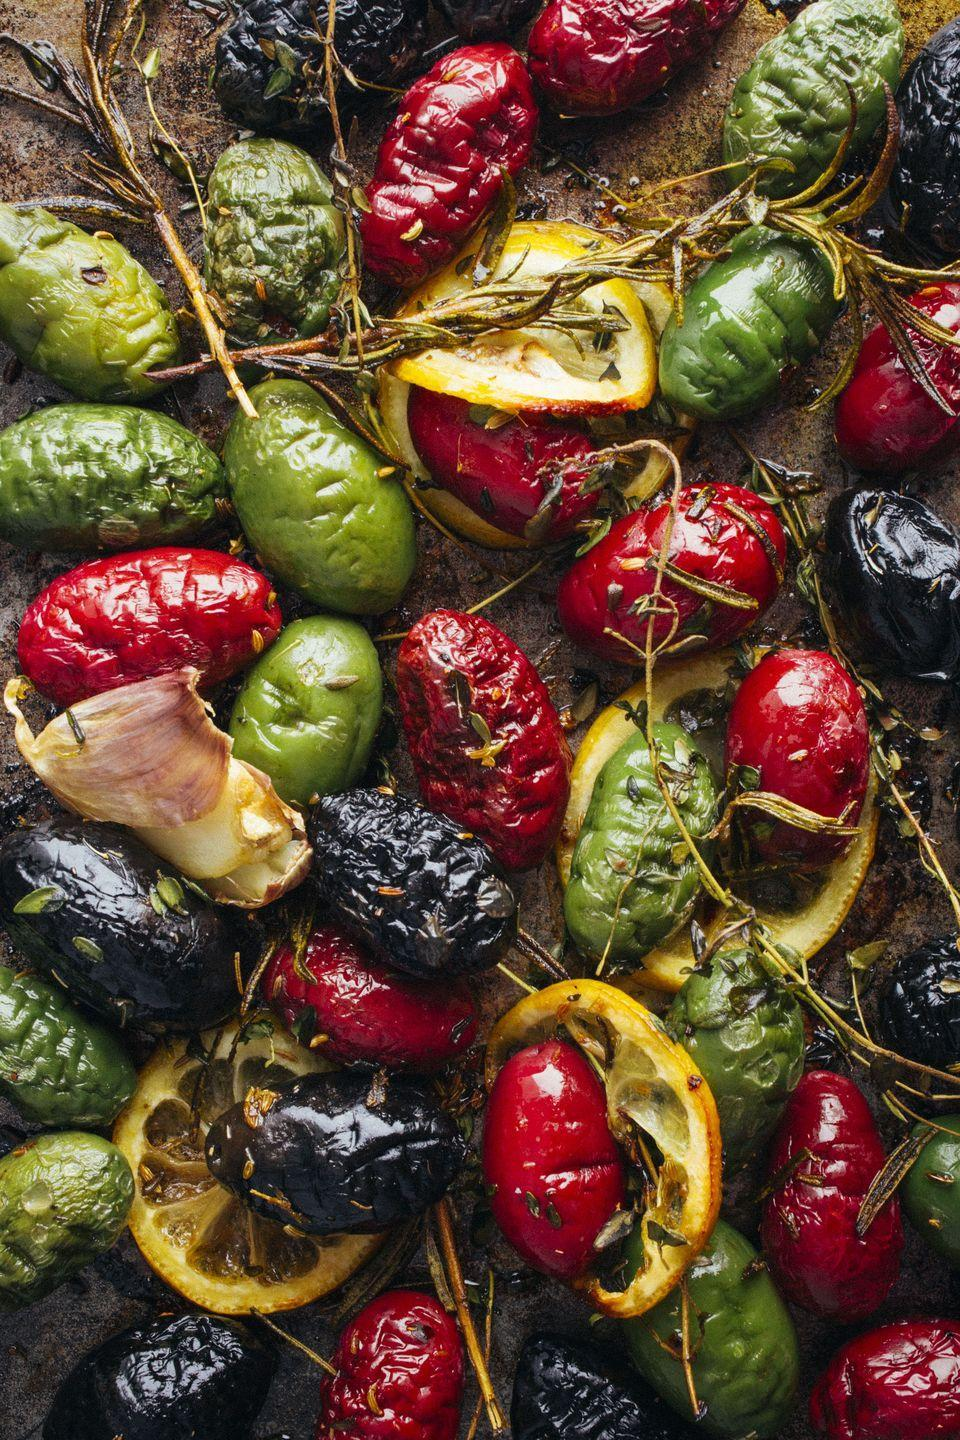 """<p>These roasted olives are basically made for Christmas — look at the colors! </p><p><em><a href=""""https://www.goodhousekeeping.com/food-recipes/easy/a46631/roasted-olives-with-lemon-garlic-and-herbs-recipe/"""" rel=""""nofollow noopener"""" target=""""_blank"""" data-ylk=""""slk:Get the recipe for Roasted Olives with Lemon, Garlic and Herbs »"""" class=""""link rapid-noclick-resp"""">Get the recipe for Roasted Olives with Lemon, Garlic and Herbs »</a></em></p>"""